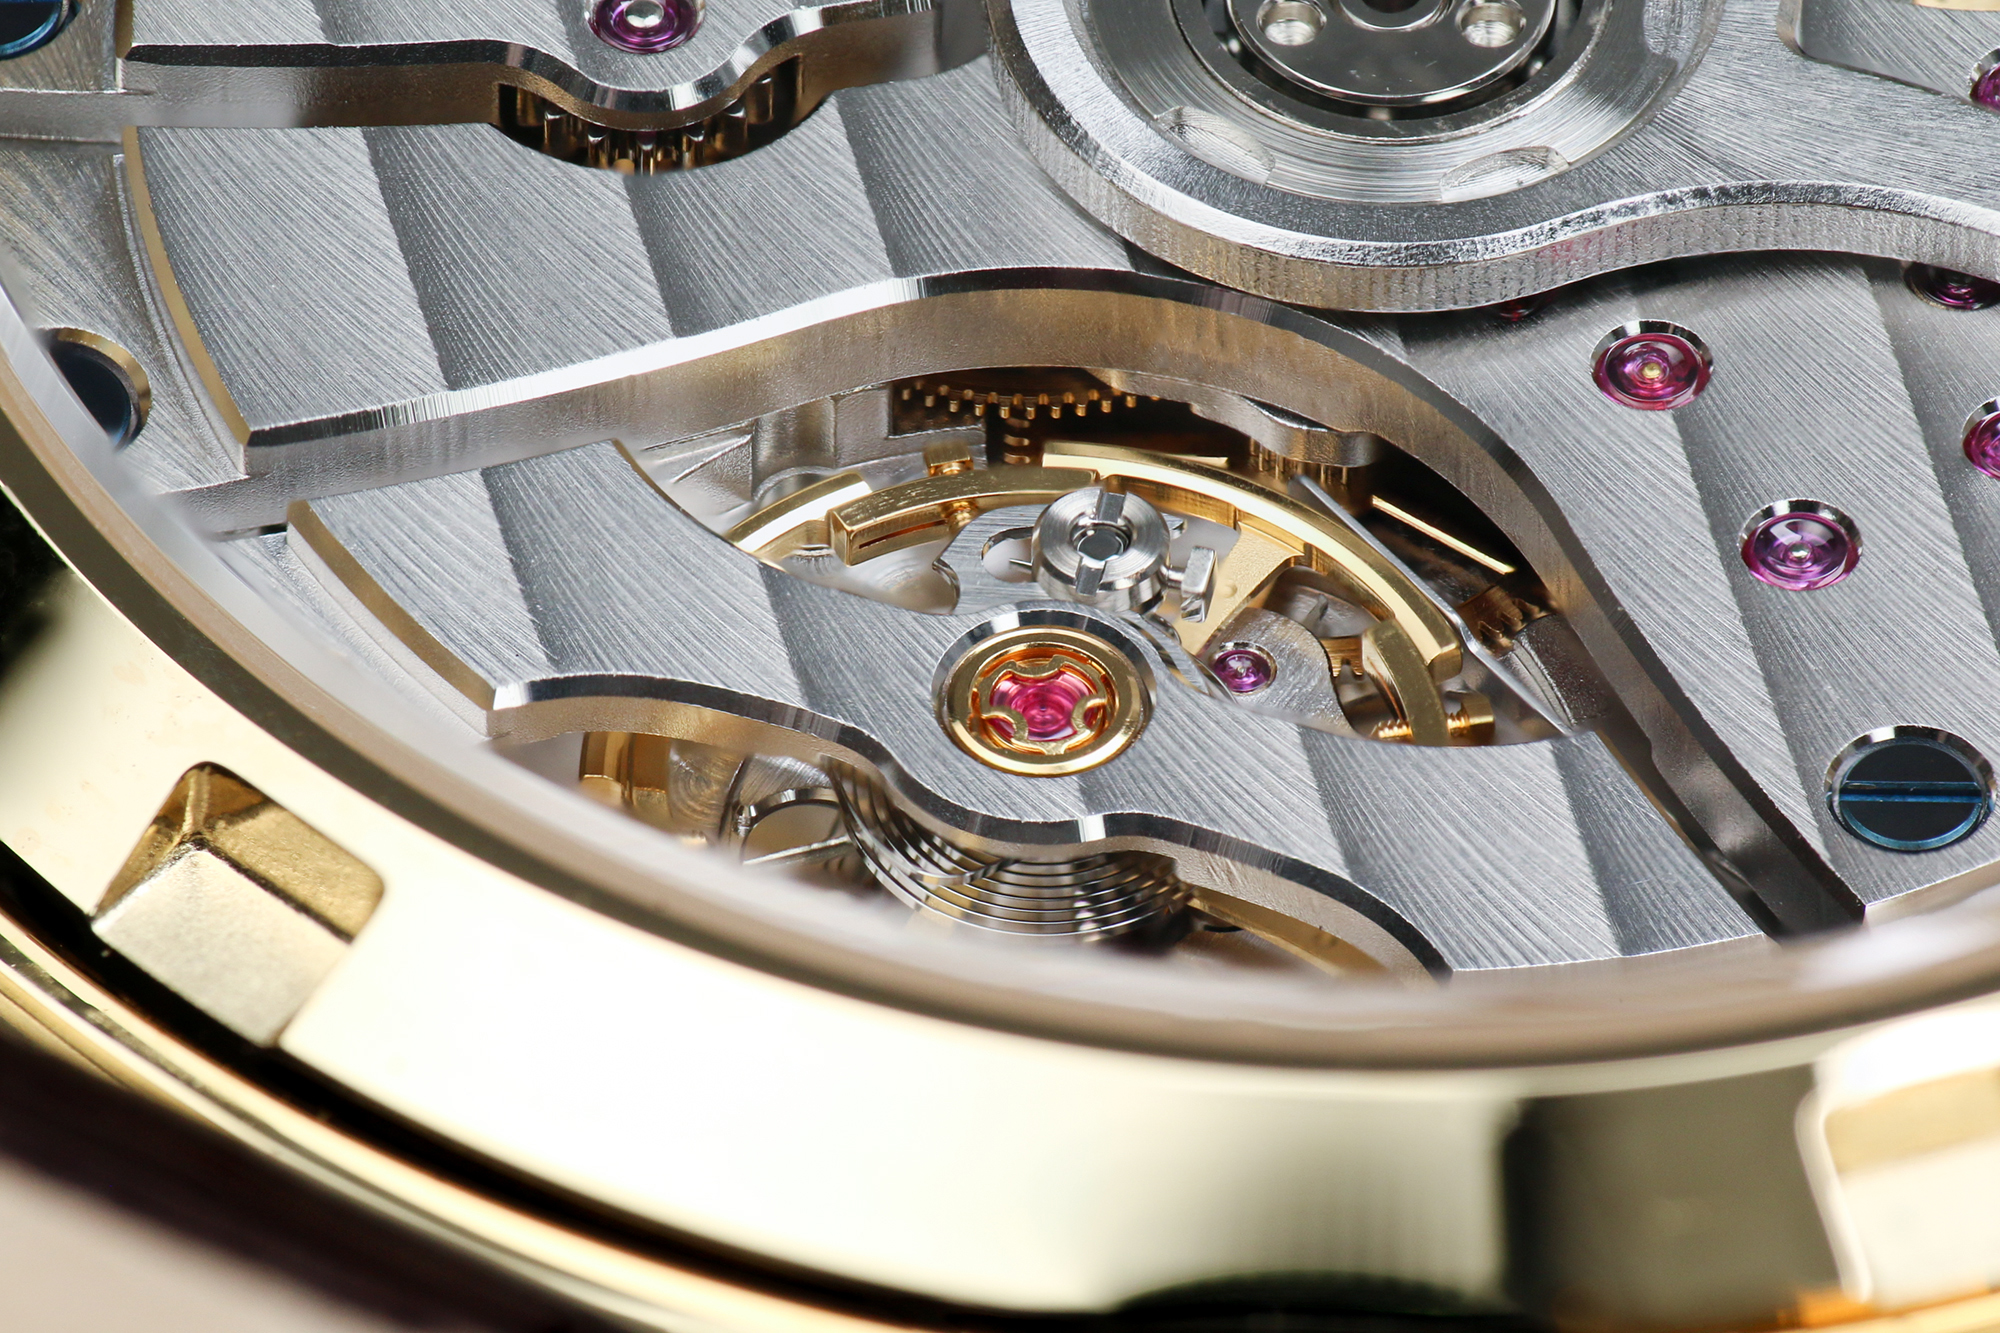 Grand Seiko 9SA5 caliber bridge in detail.